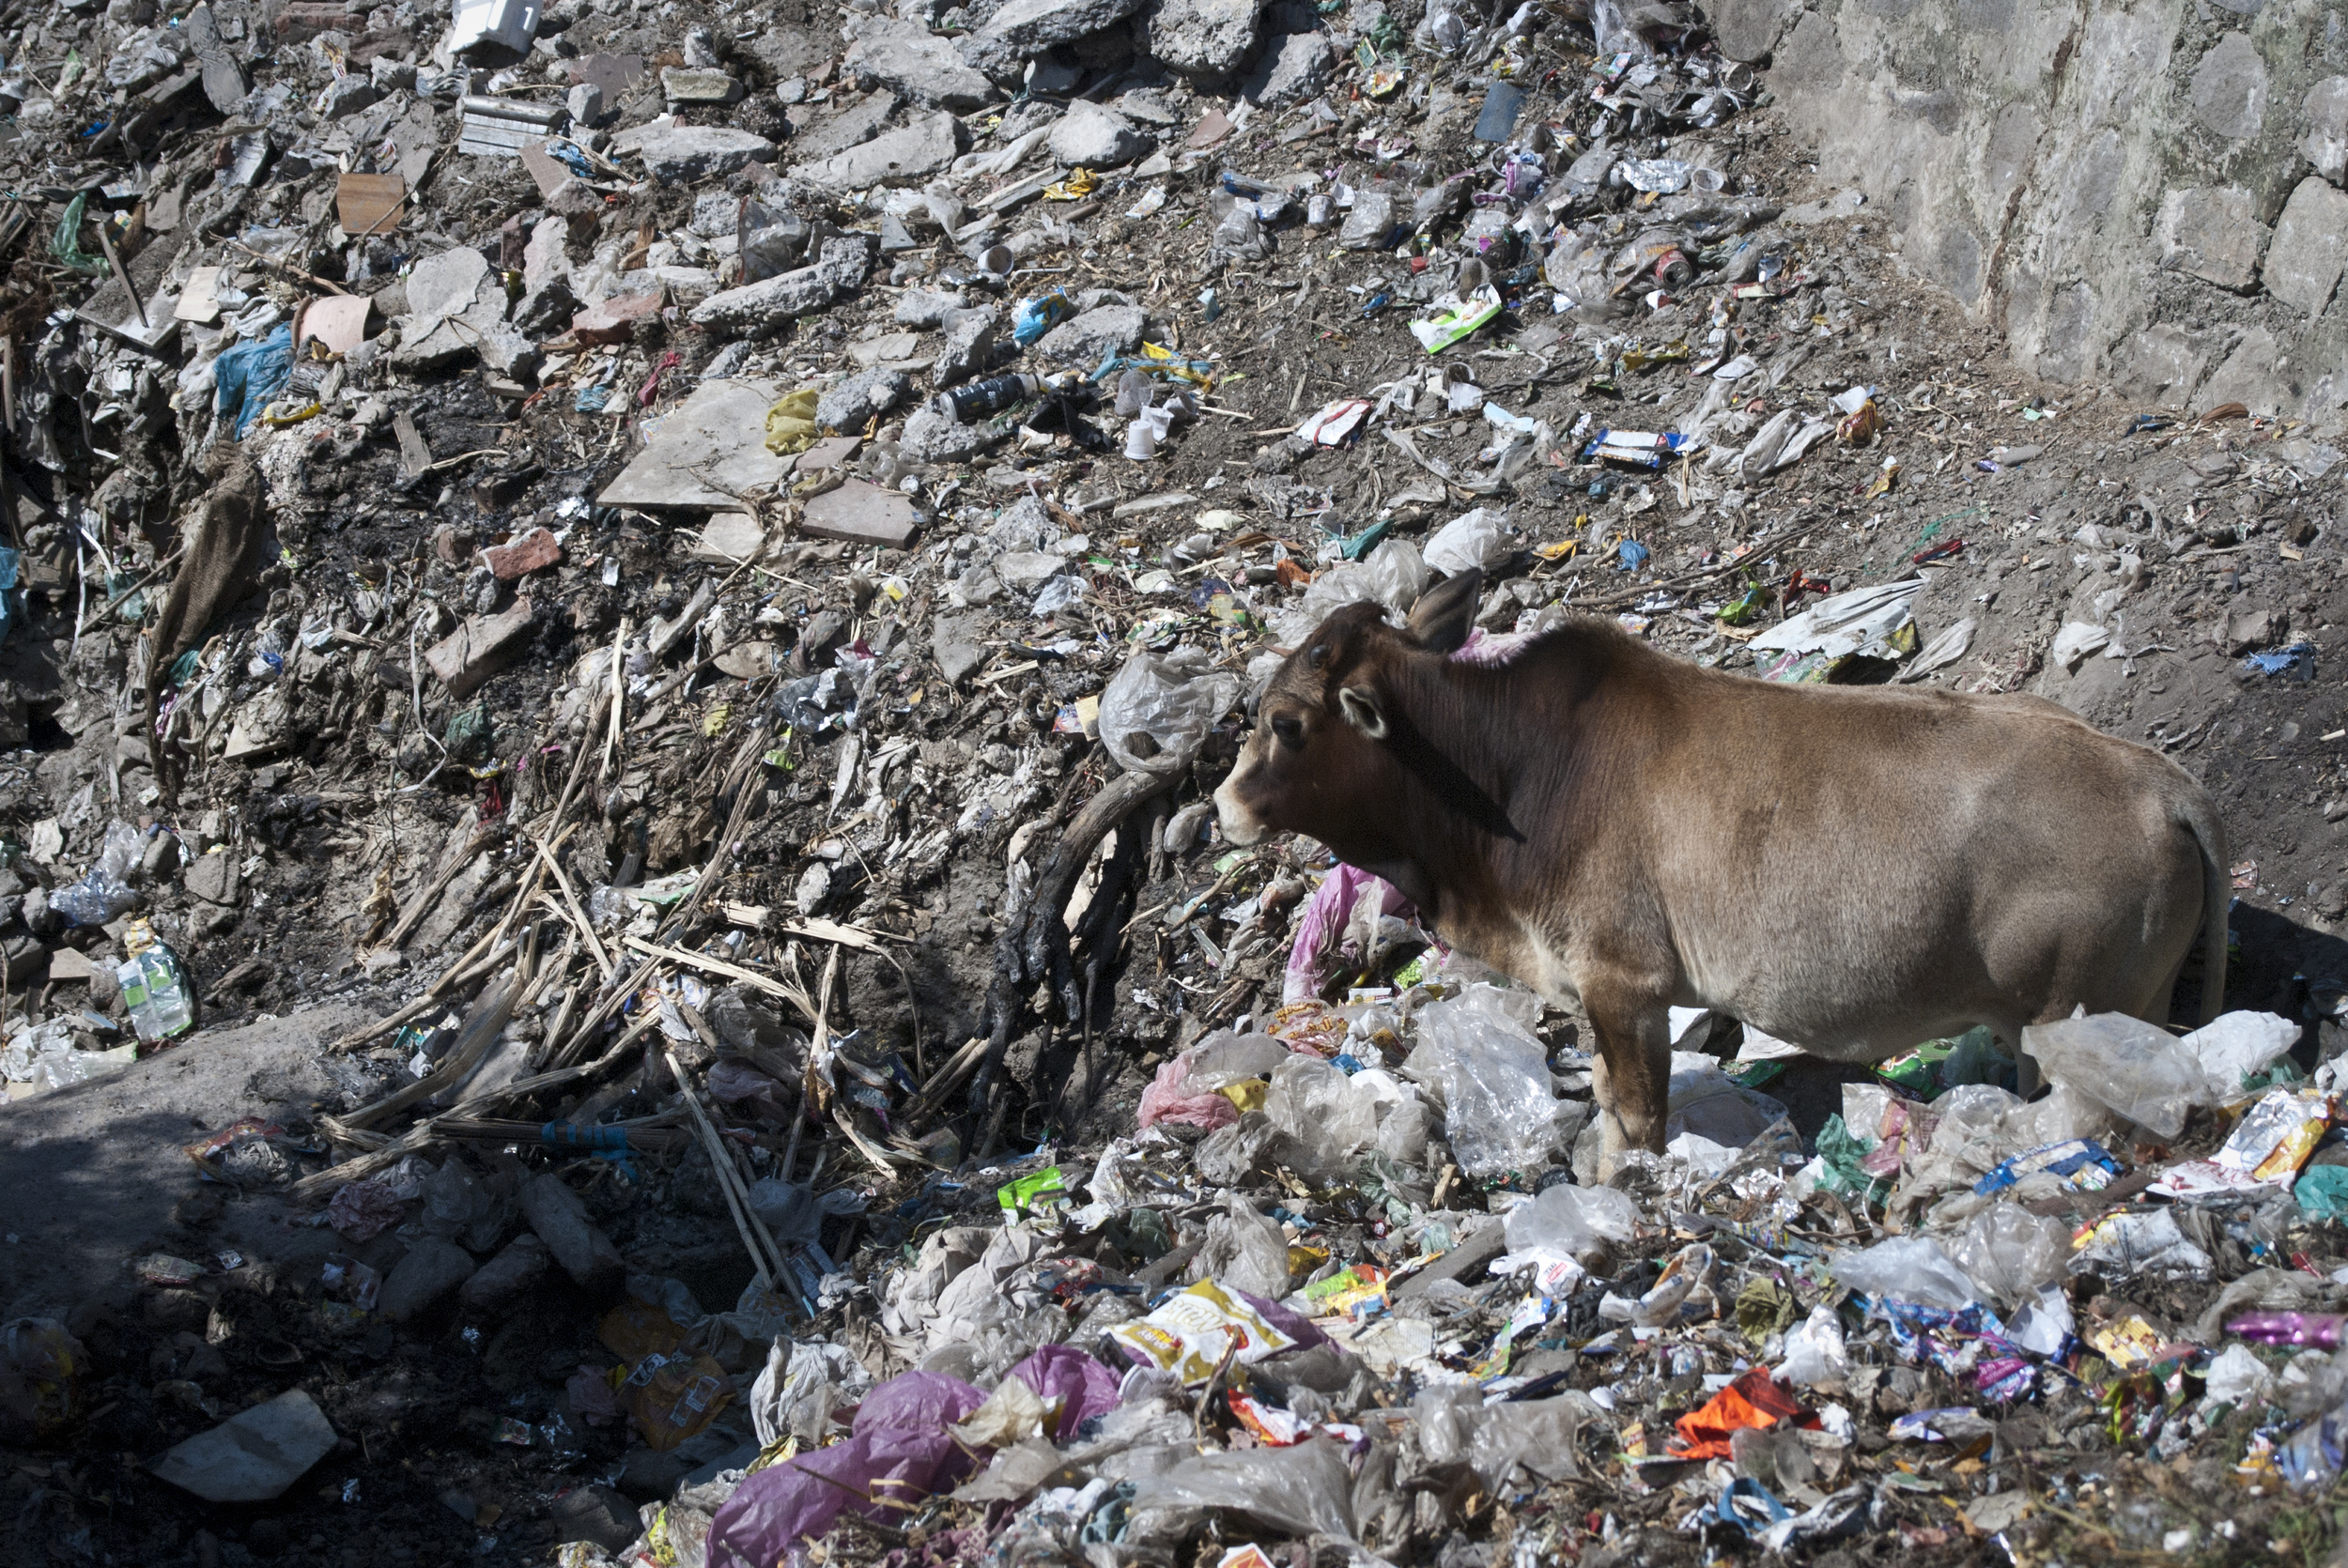 A cow stands amidst a large build up of trash on the perimeter of the city.